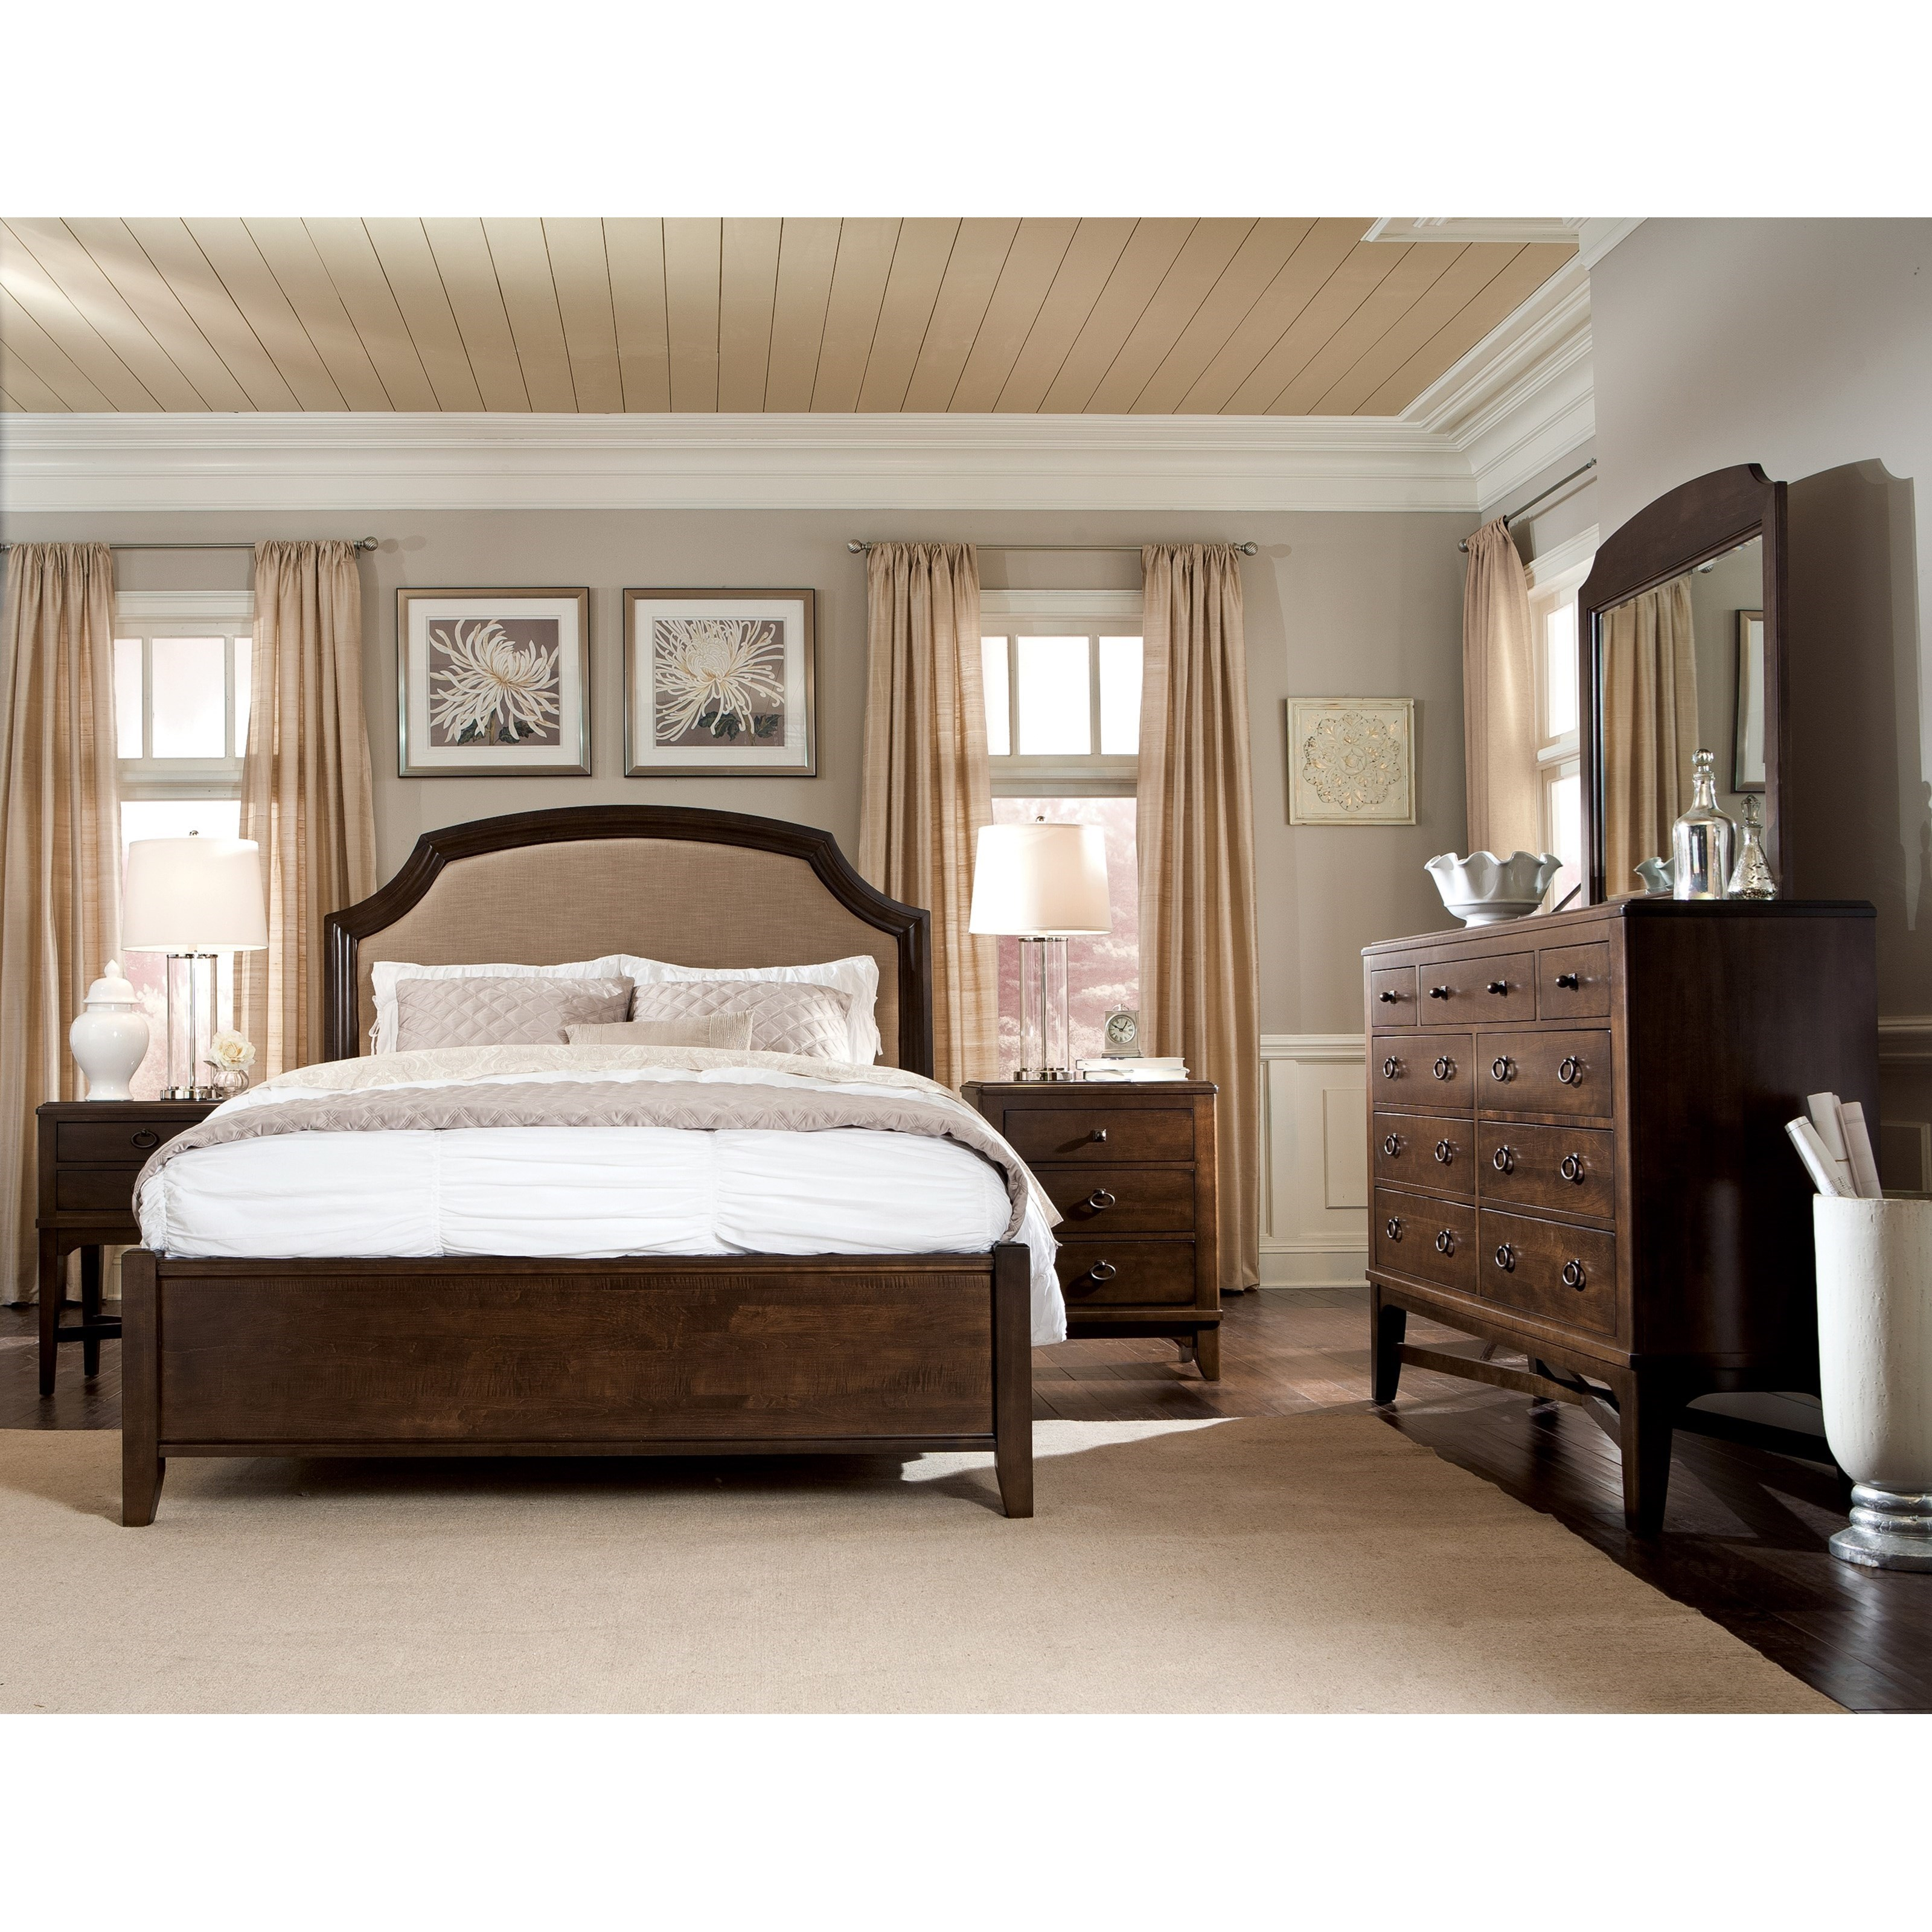 Glen Terrace King Bedroom Group by Durham at Stoney Creek Furniture